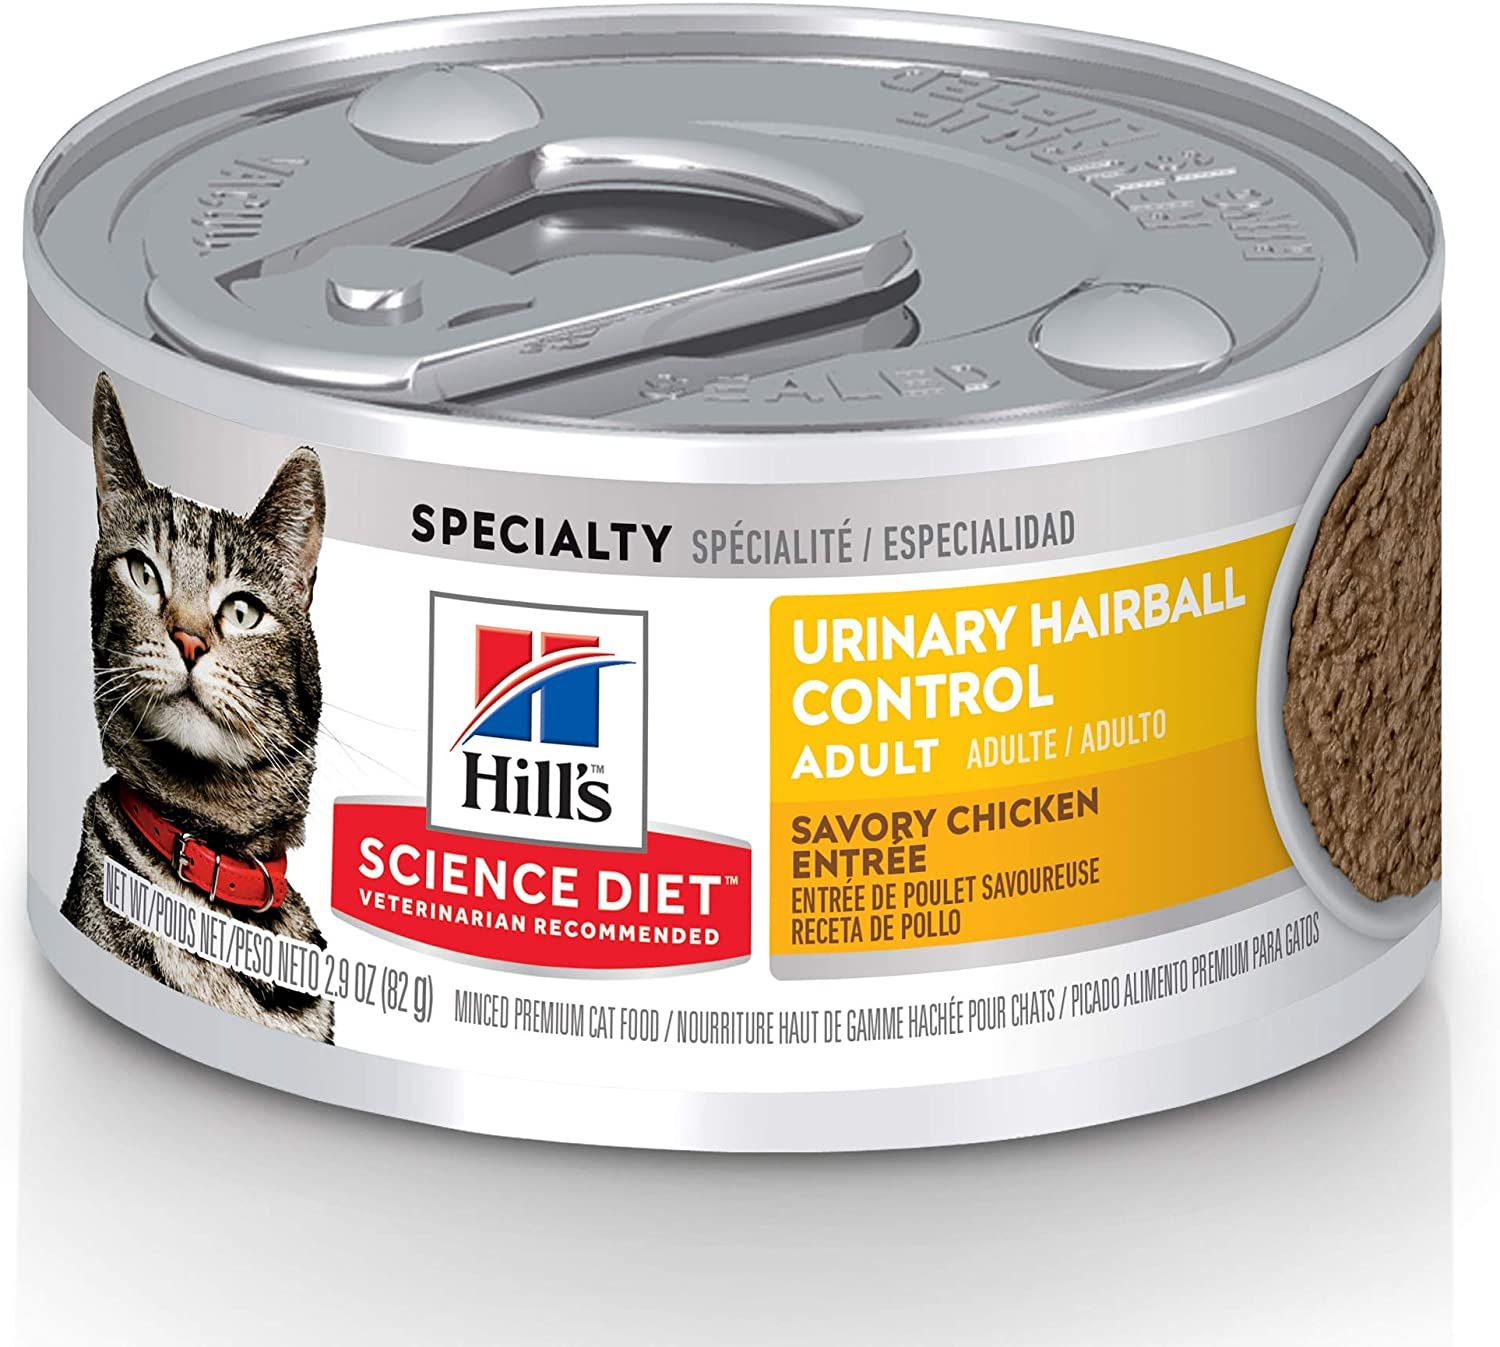 Pin On Pet Food Product 2021